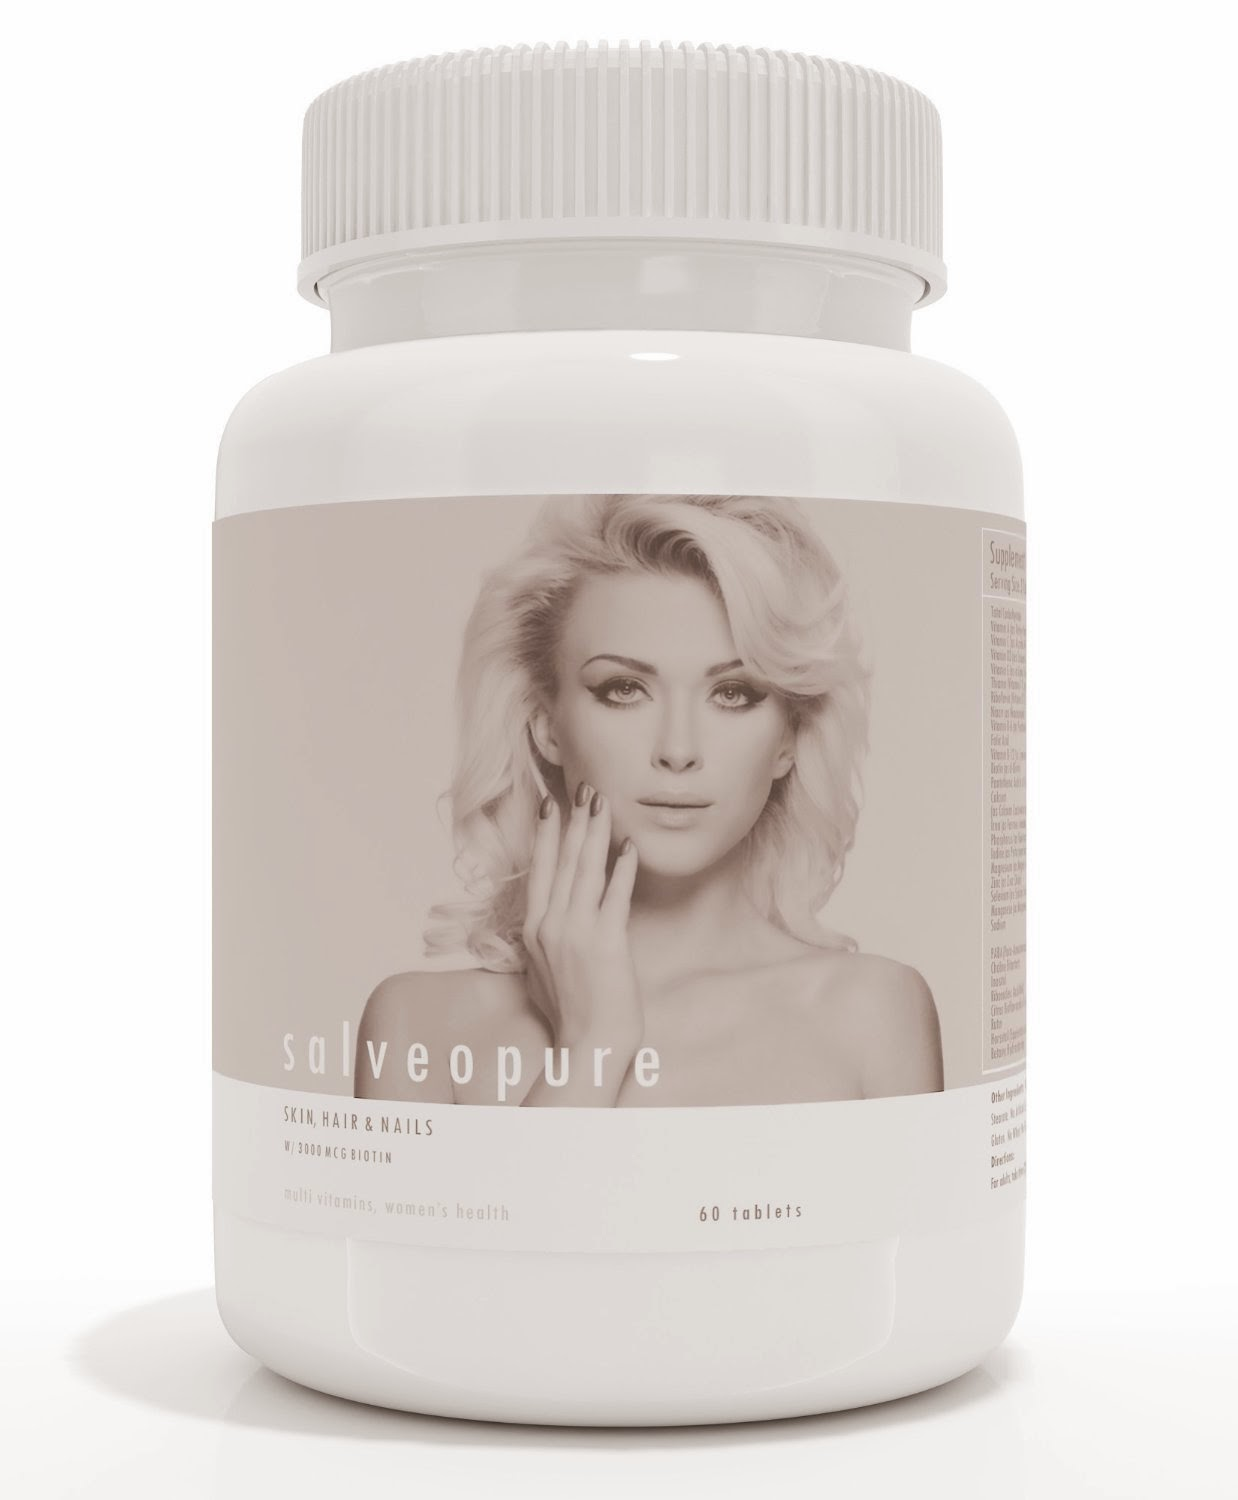 http://www.amazon.com/Salveopure-Anti-Aging-Formula-Tablets-Improving/dp/B00T286WJE/ref=sr_1_1?ie=UTF8&qid=1427513882&sr=8-1&keywords=salveopure+skin+hair+nails